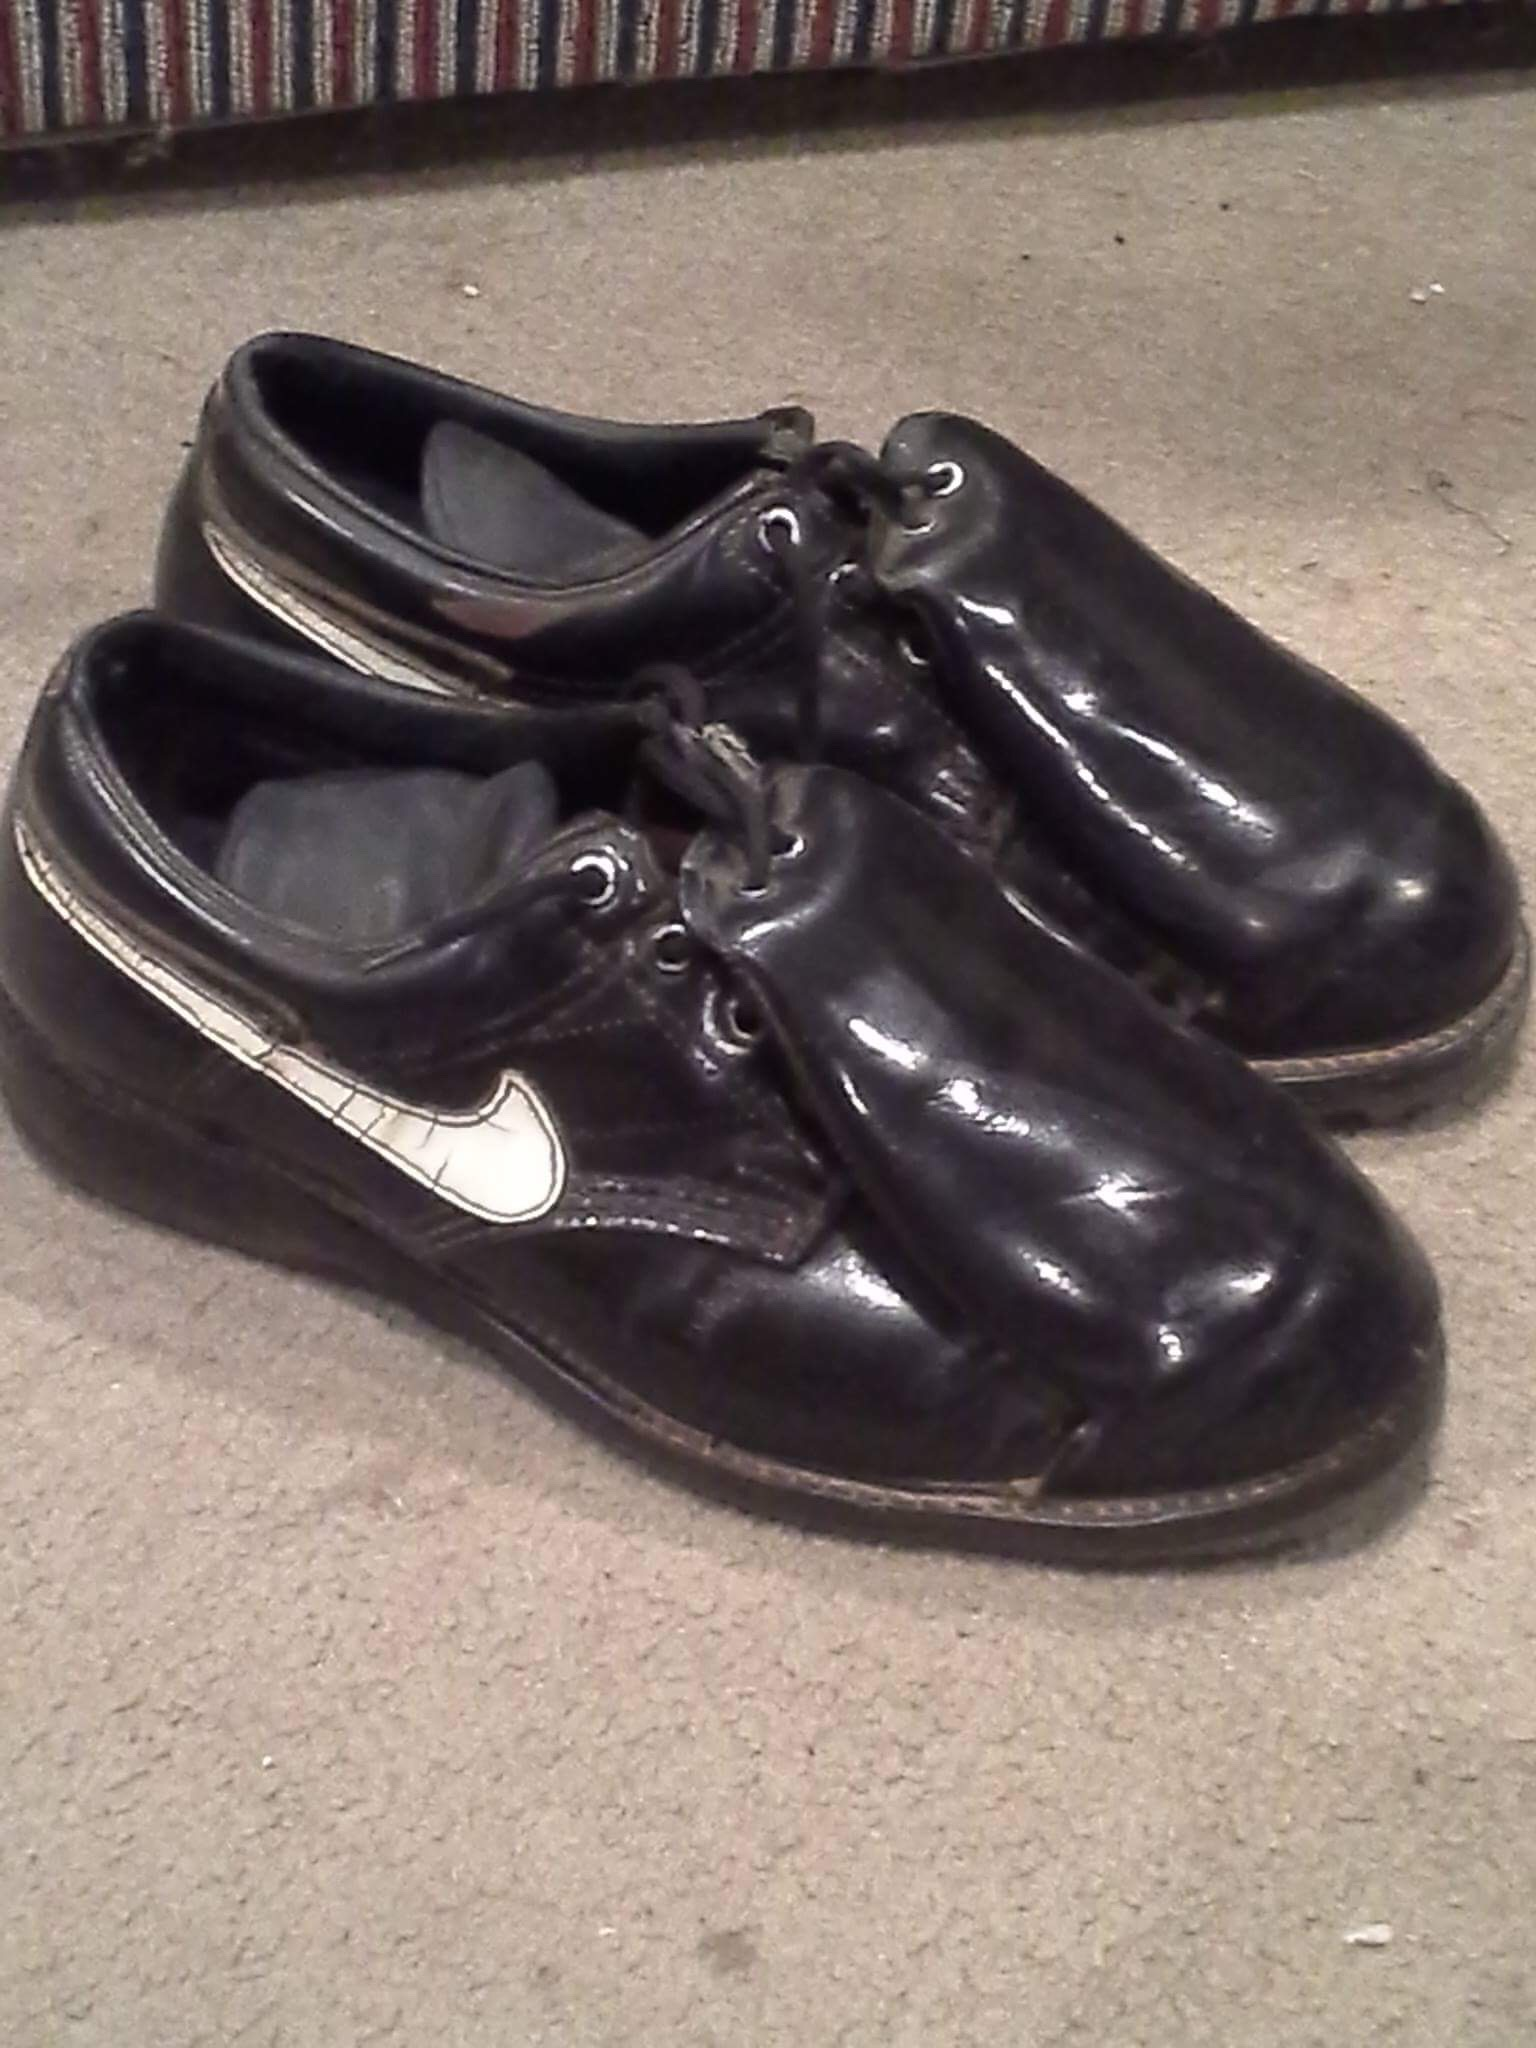 promo code 7d049 86790 Nike plate shoes  Old school guys needed. - Umpire Equipment ...